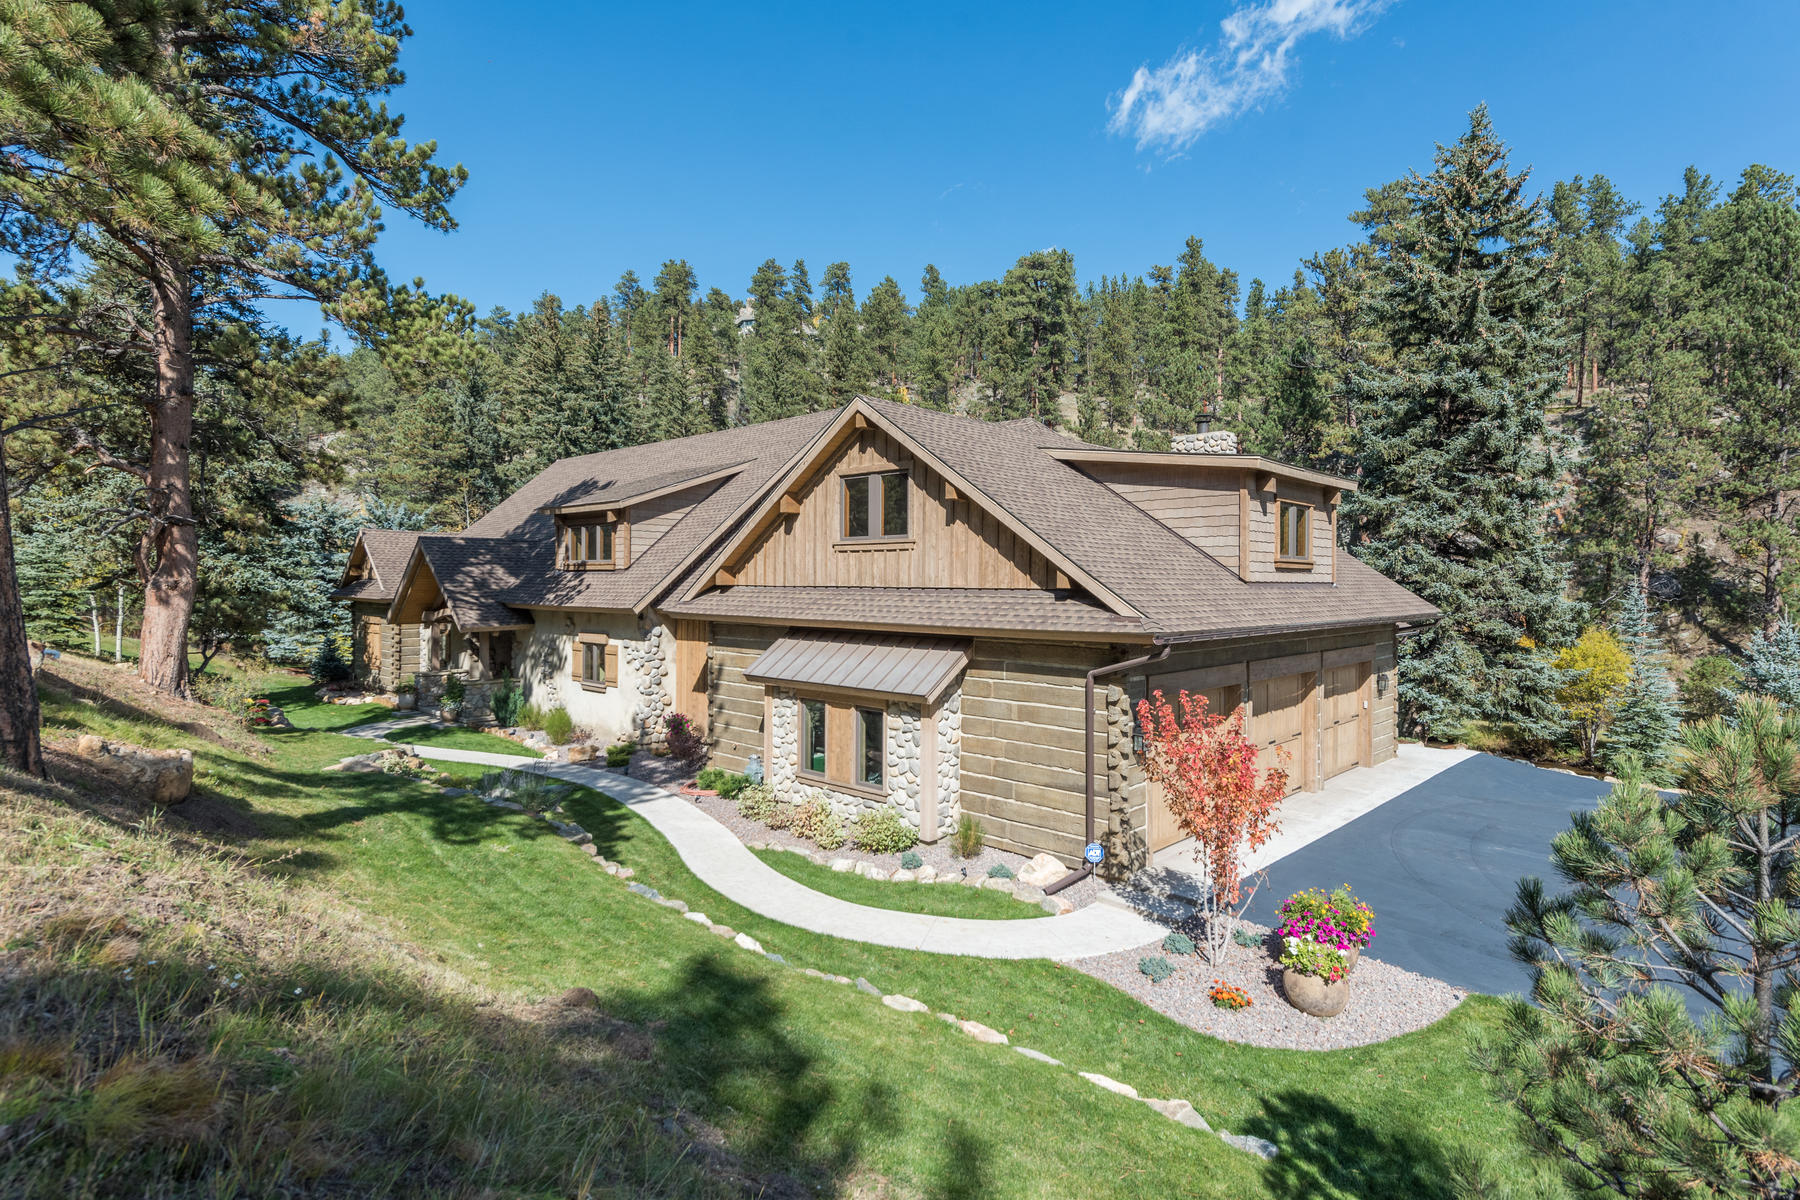 Single Family Home for Active at Custom Creekside Living! 34503 Upper Bear Creek Road Evergreen, Colorado 80439 United States